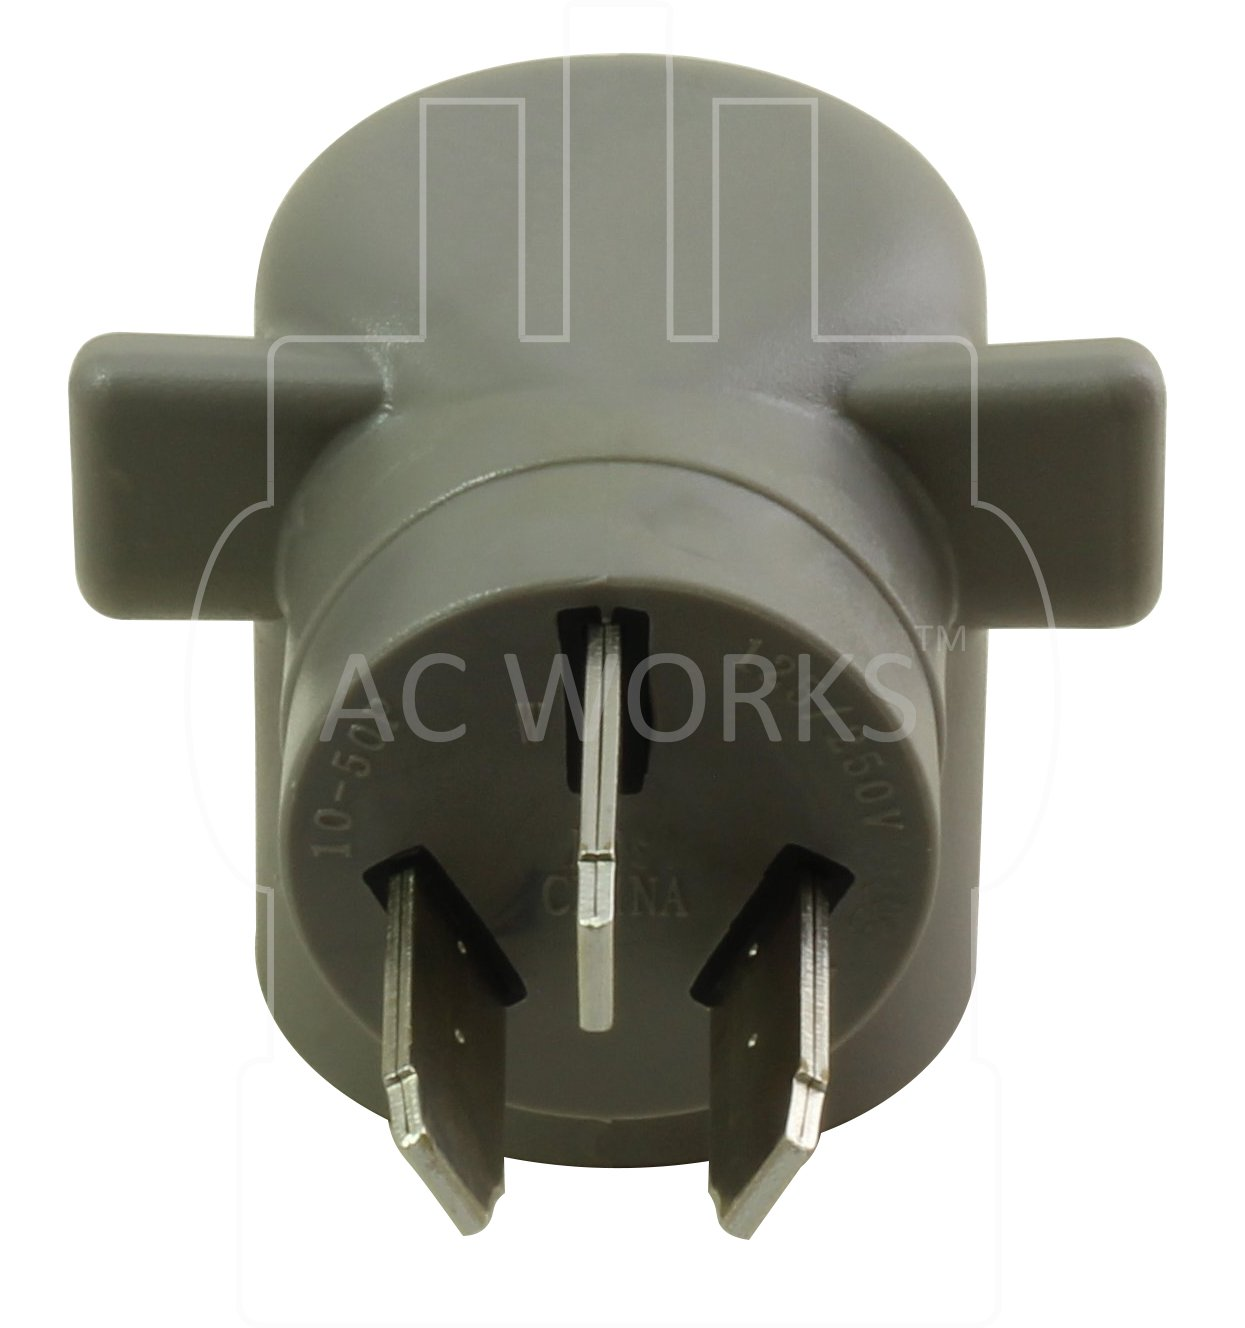 AC WORKS EV Charging Adapter for Tesla Use (10-50 50A 3-Prong Straight Blade to Tesla) by AC WORKS (Image #3)